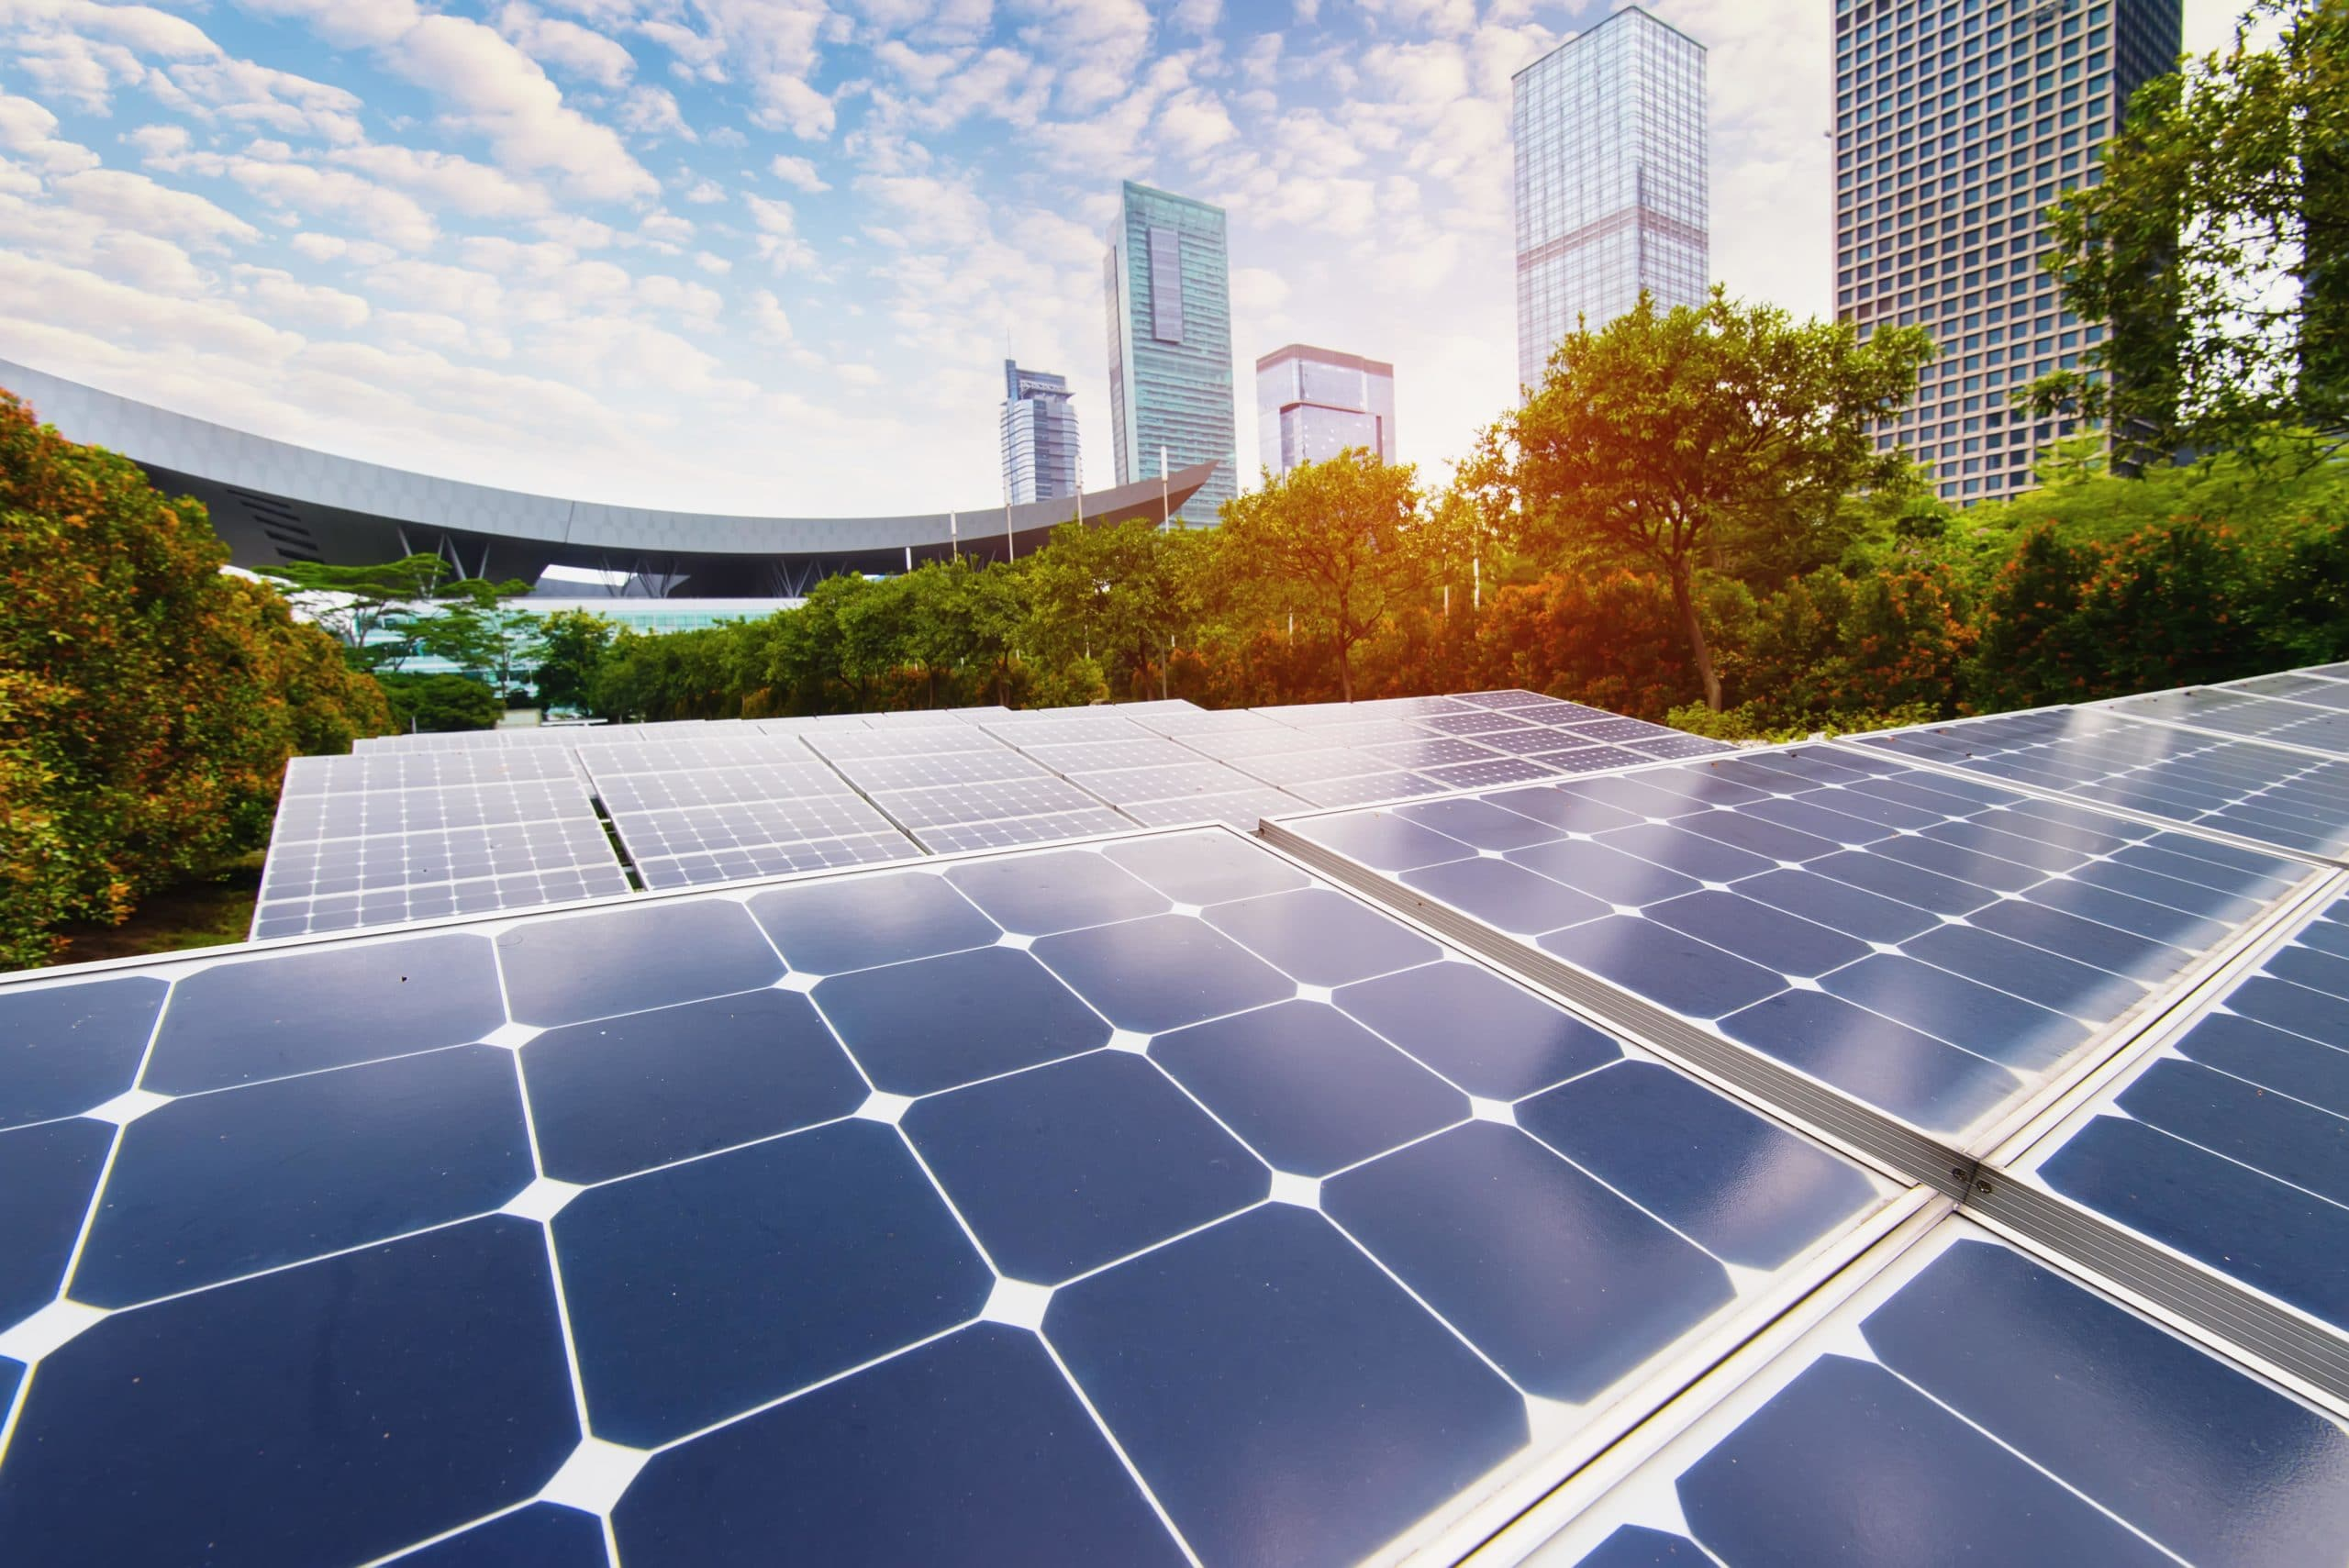 Solar Panel with City in Background - Solar Panel Companies - Get Your Quote